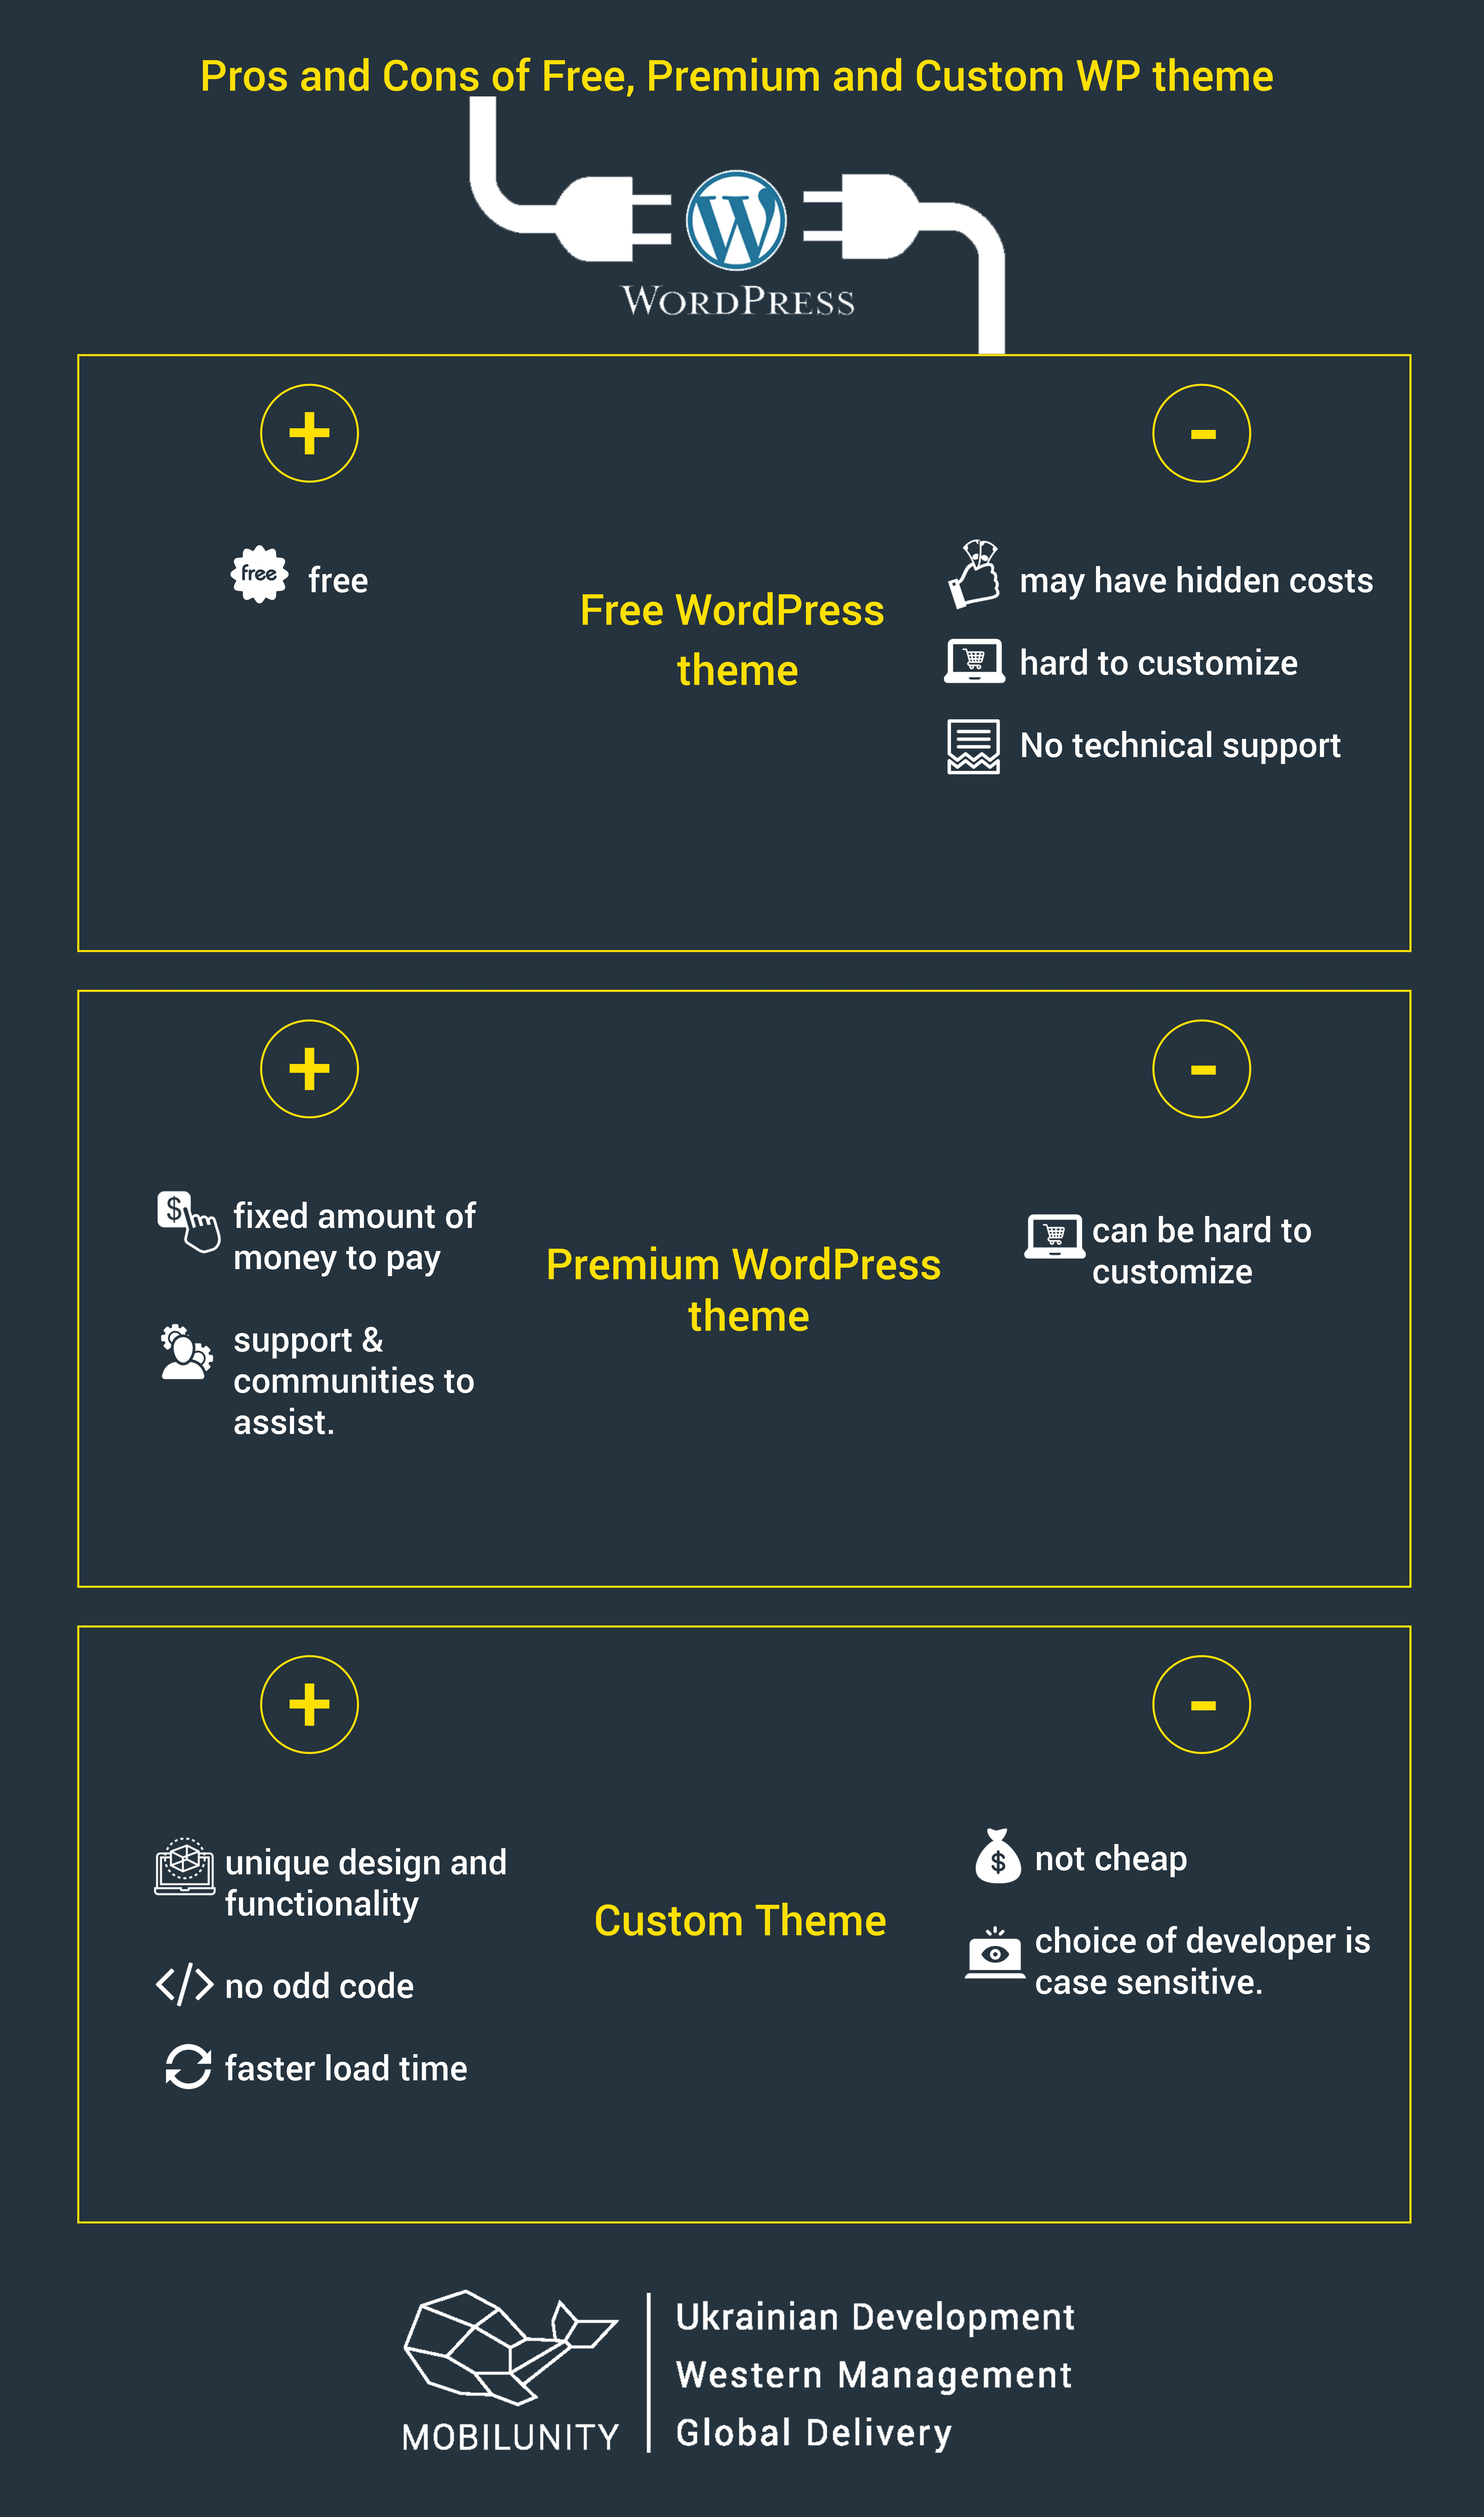 pros-and-cons-of-free-premium-and-custom-wp-theme